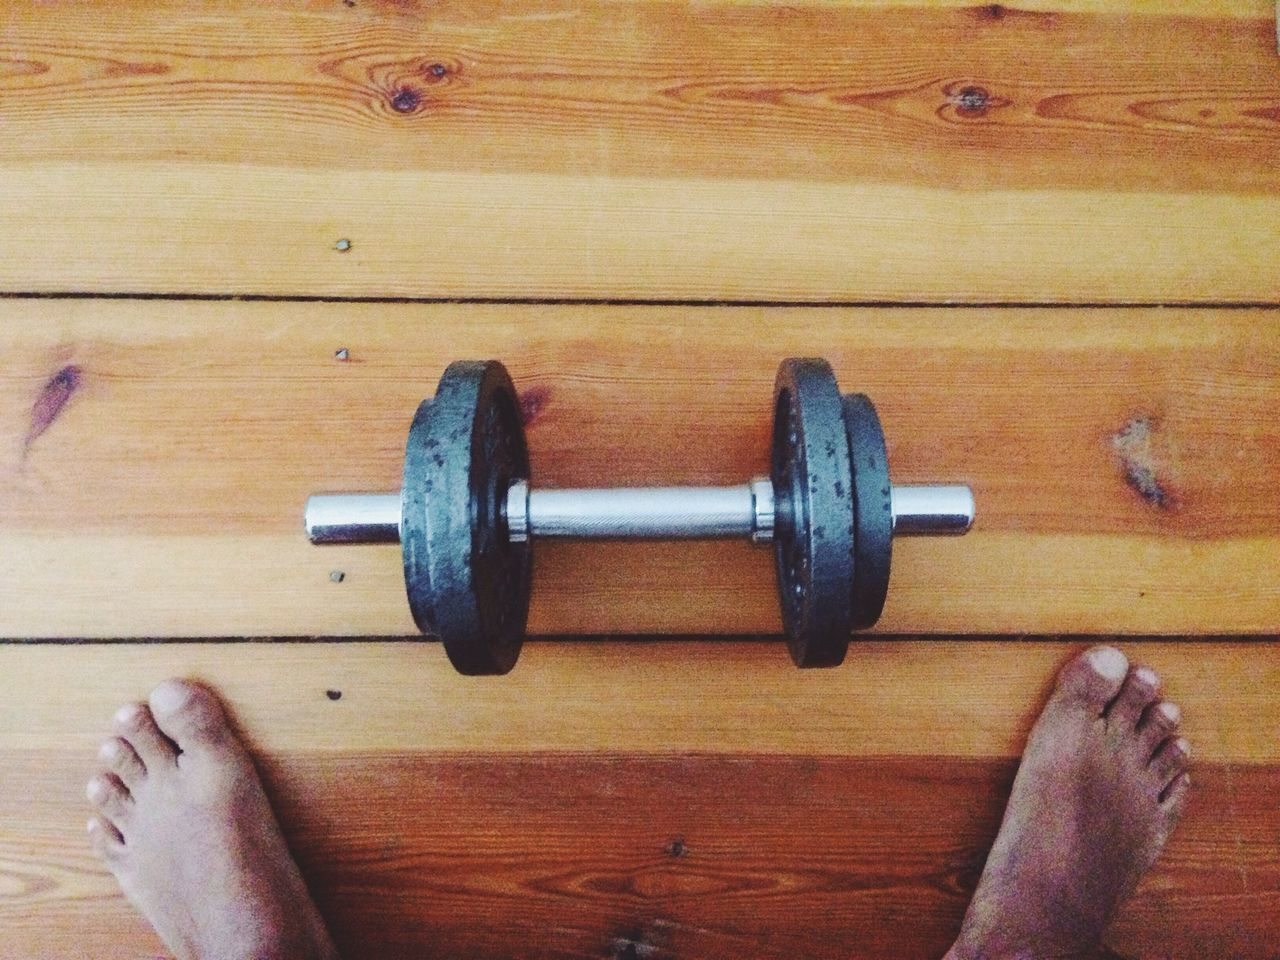 Man and dumbbell